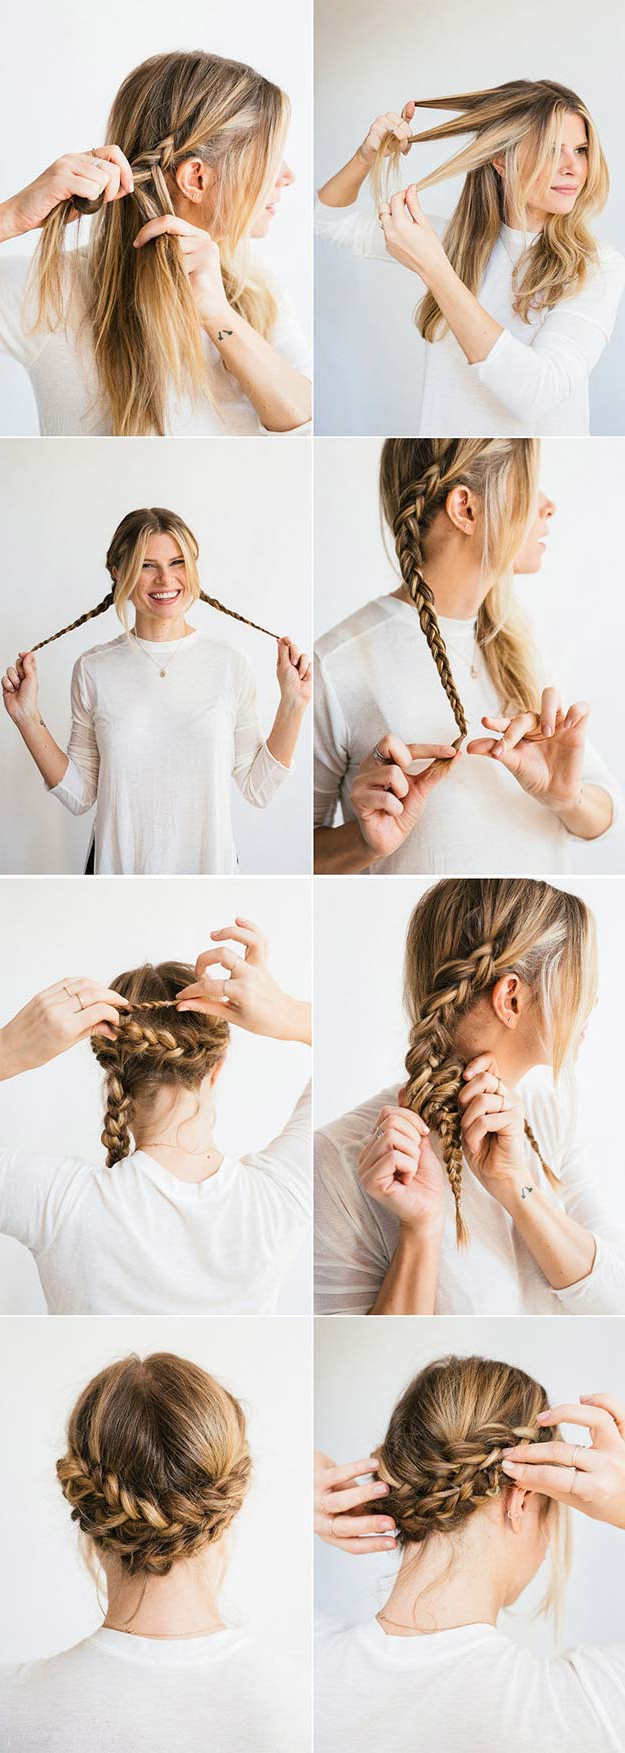 33 Best Hairstyles For Your 30S – The Goddess Regarding Newest Medium Haircuts For Women In Their 30S (Gallery 17 of 20)